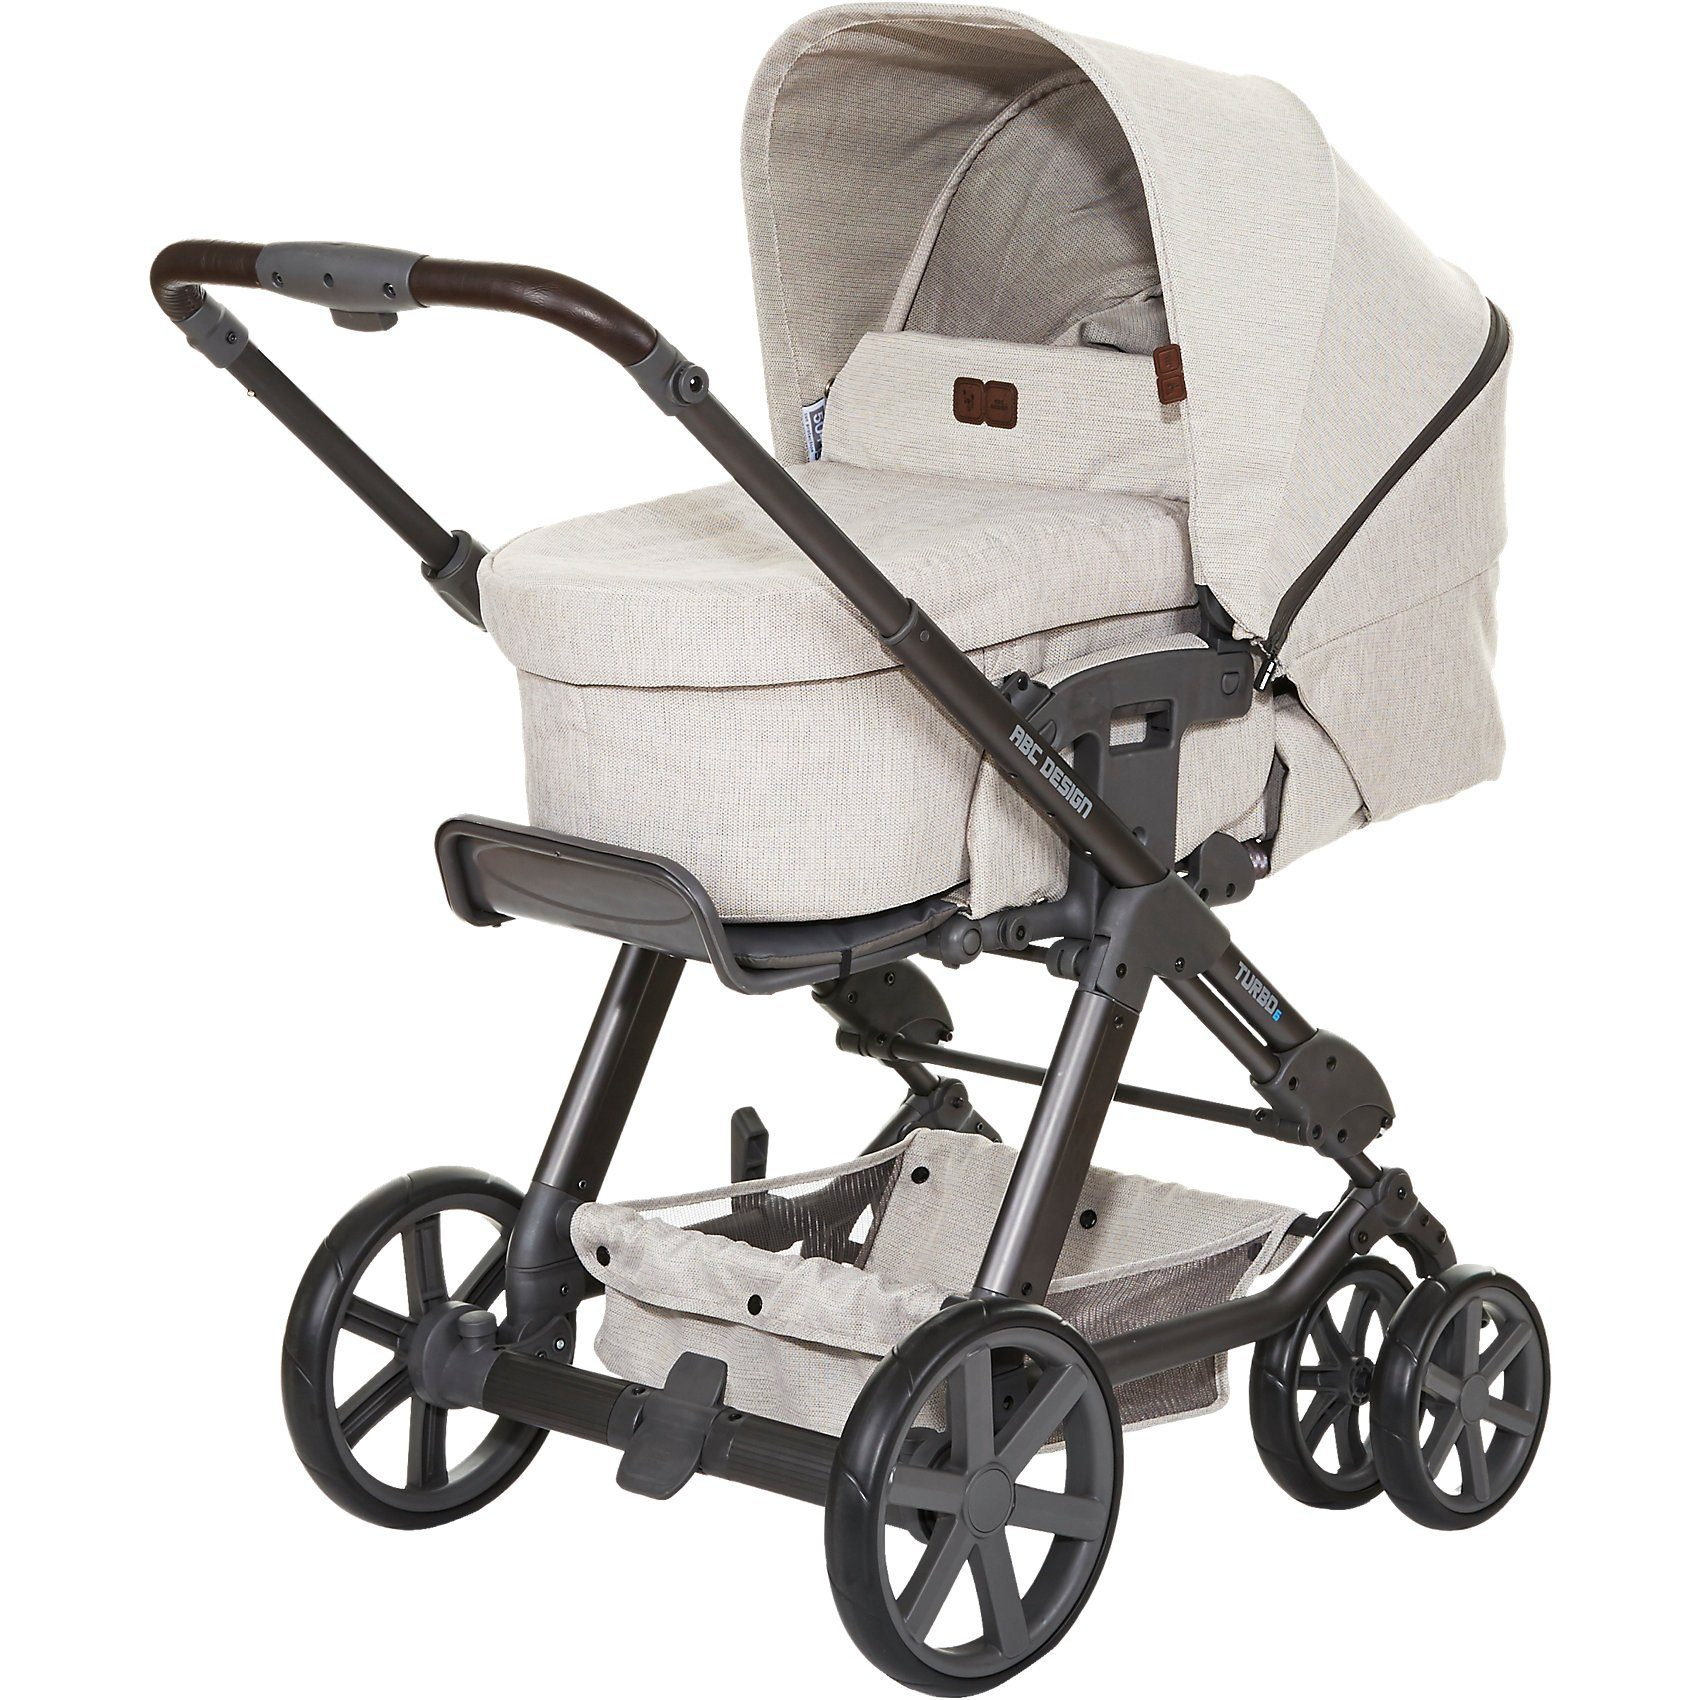 ABC Design Kombi Kinderwagen Turbo 6, camel, 2017